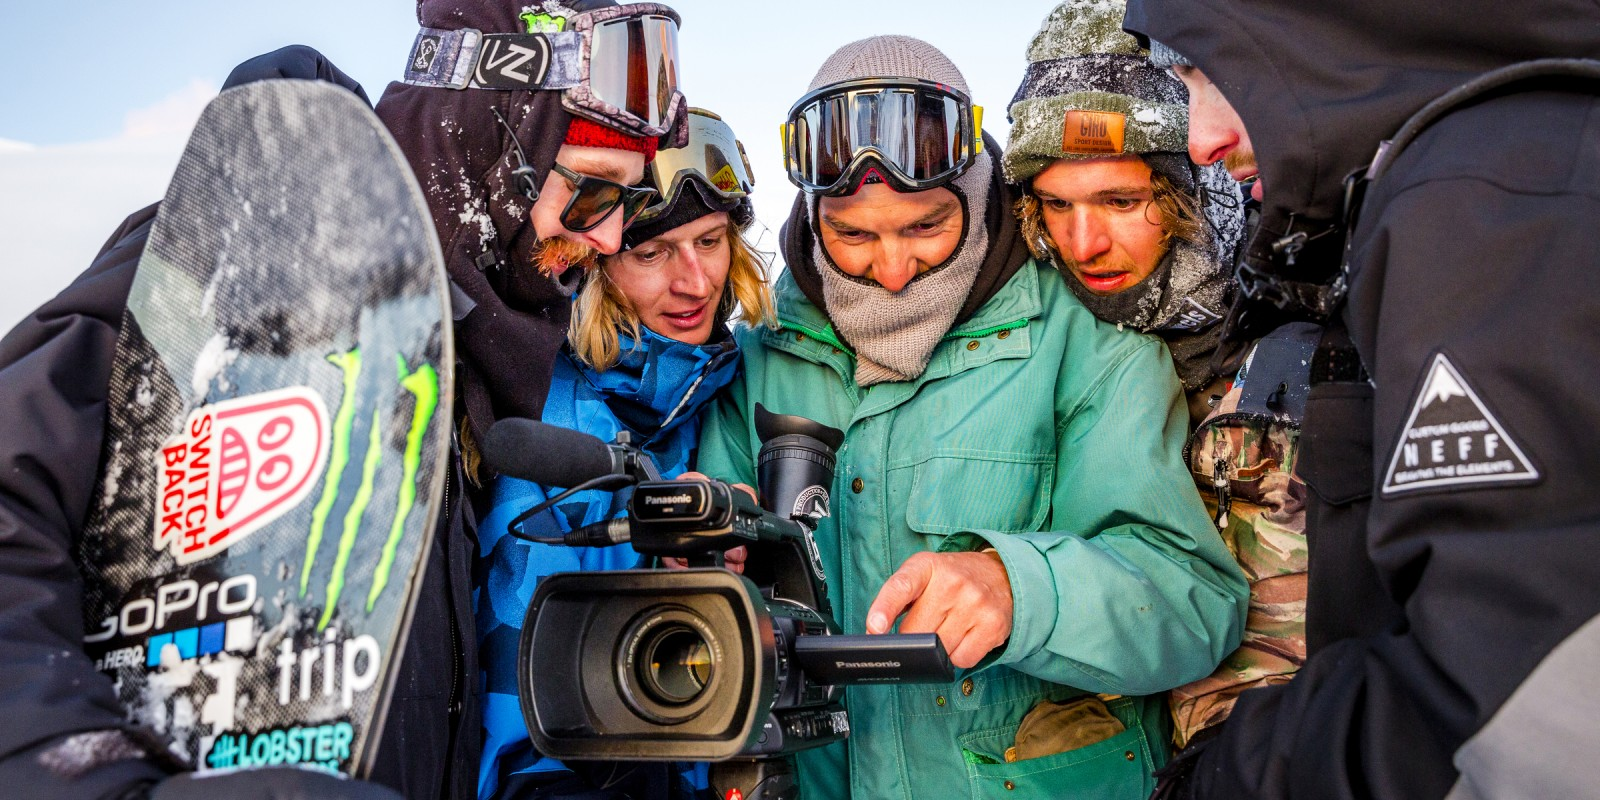 Gruber/Morgan/Halldor in Searching For snowboard movie